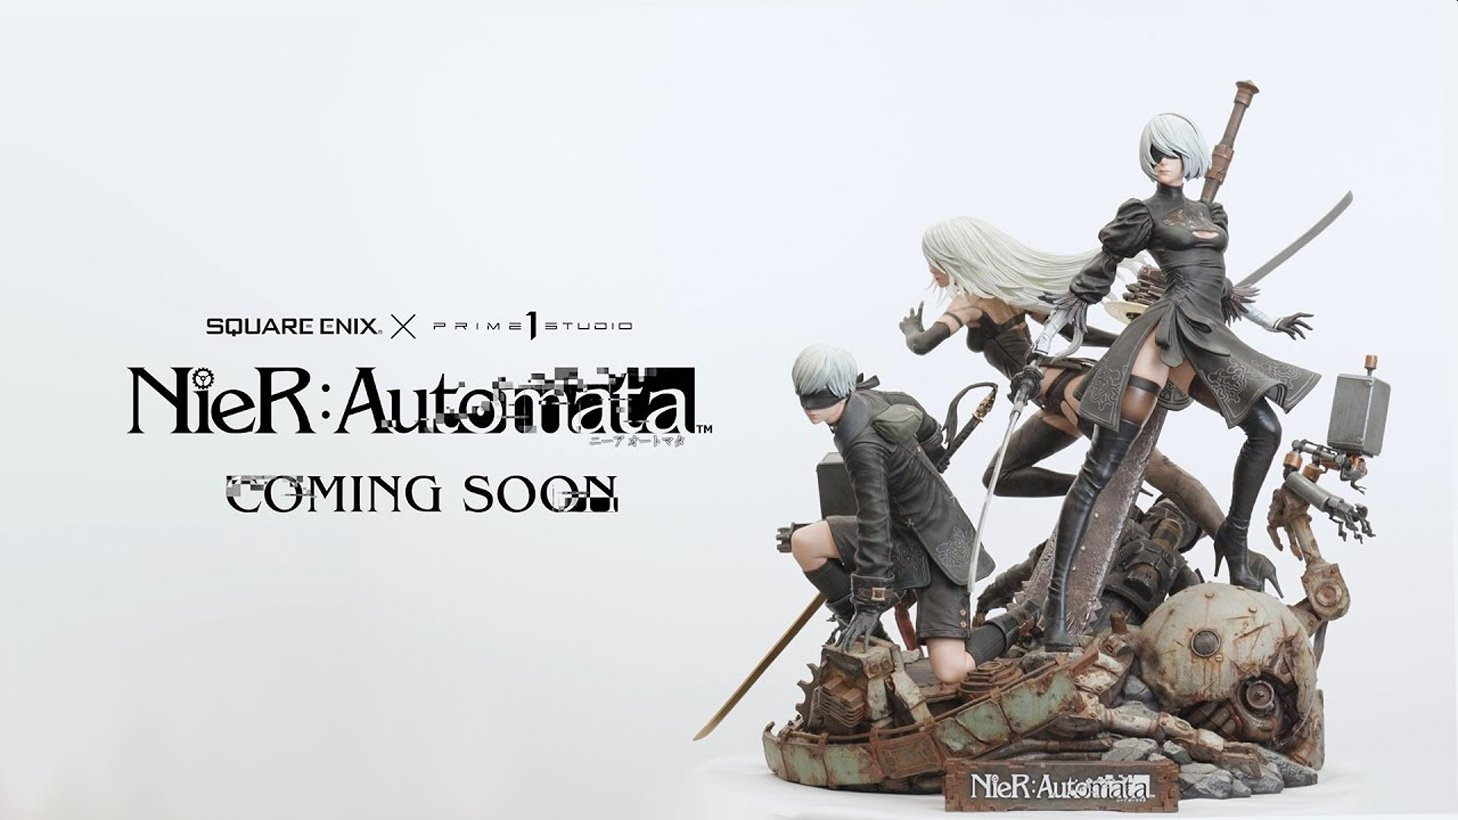 The First Statue In The New Square Enix Masterline Brand Features NieR: Automata's 2B, 9S, and A2